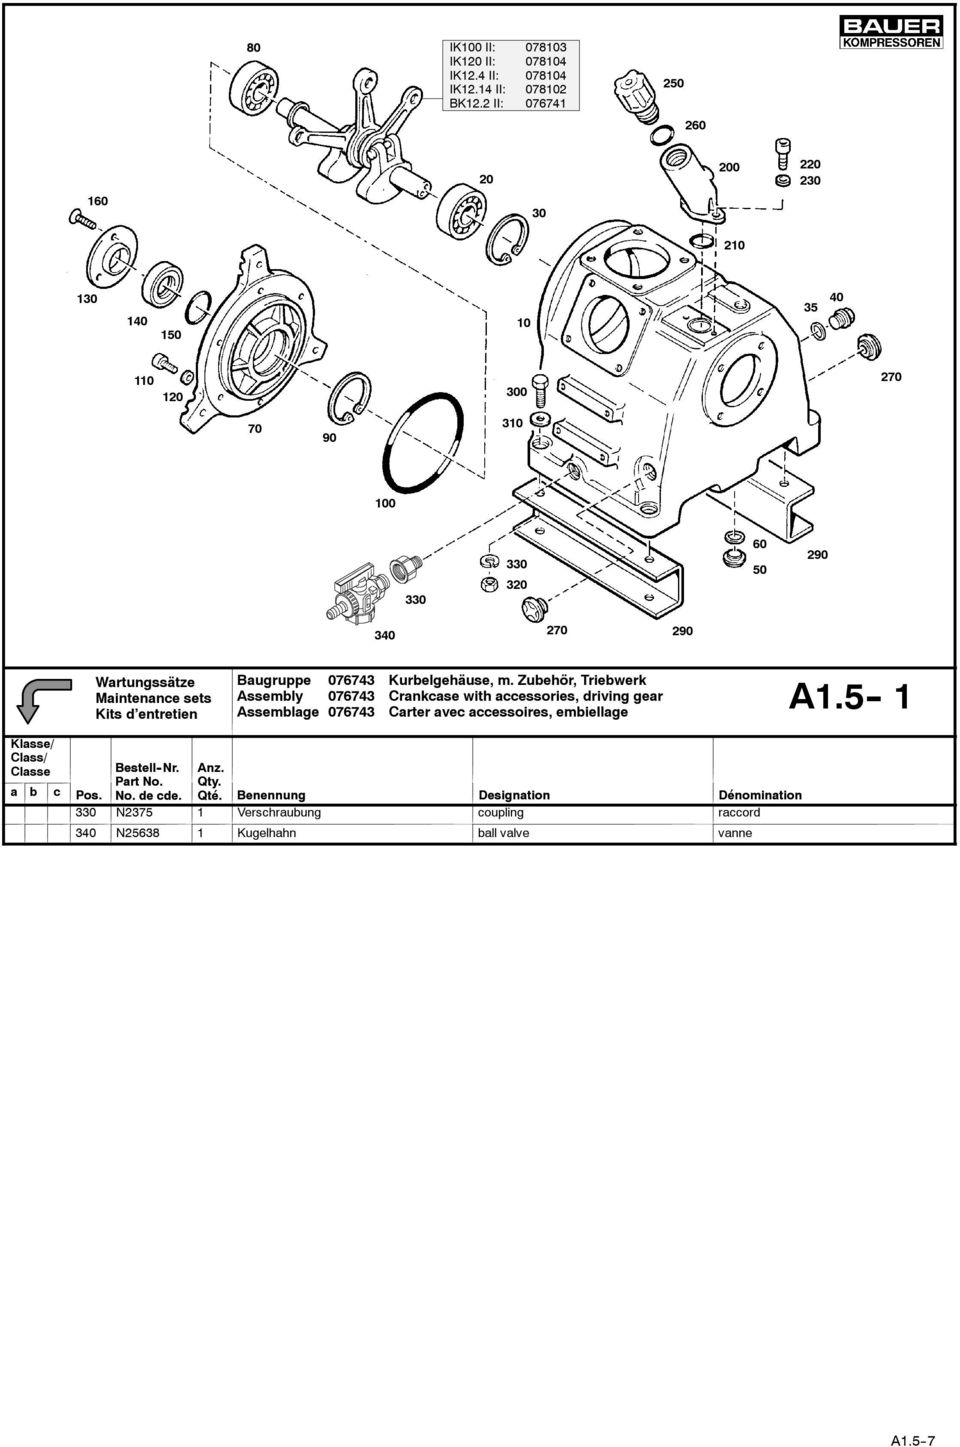 Kurbelgehäuse, m. Zubehör, Triebwerk Assembly 76743 Crankcase with accessories, driving gear A1.